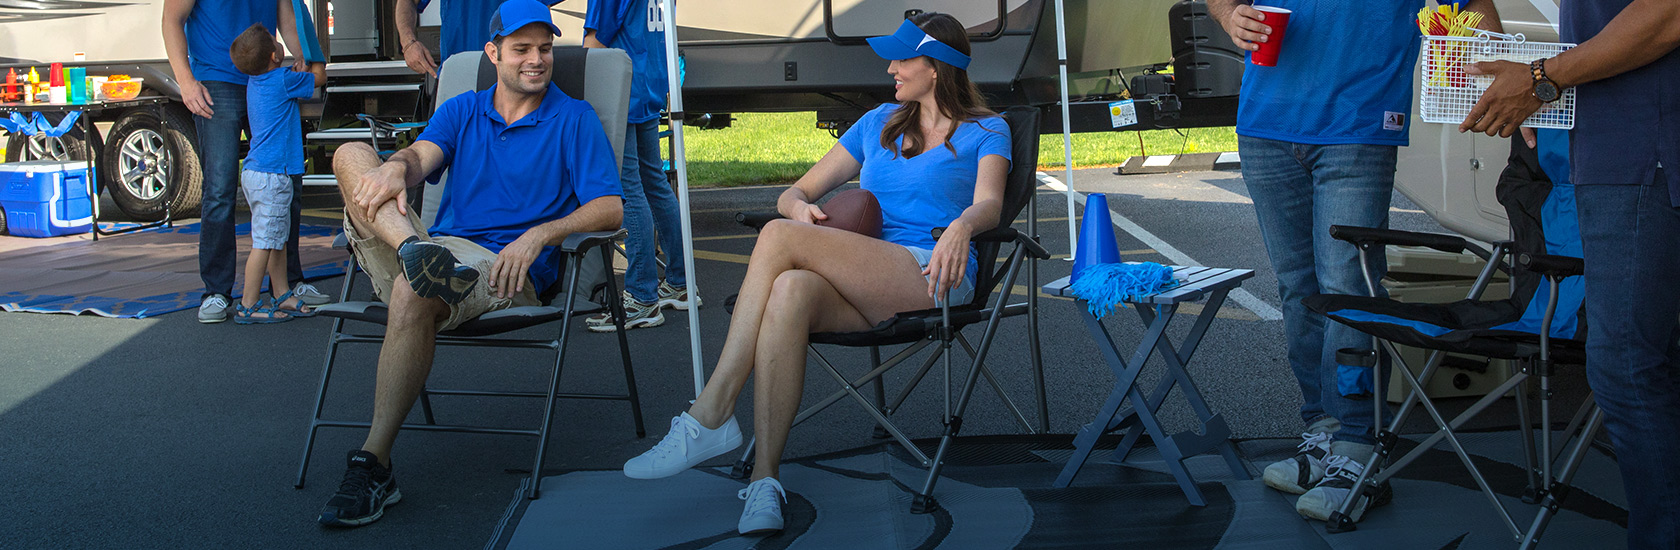 Your Tailgate NEEDS SOME COMFY CHAIRS! Shop Chairs, Rockers, & Recliners